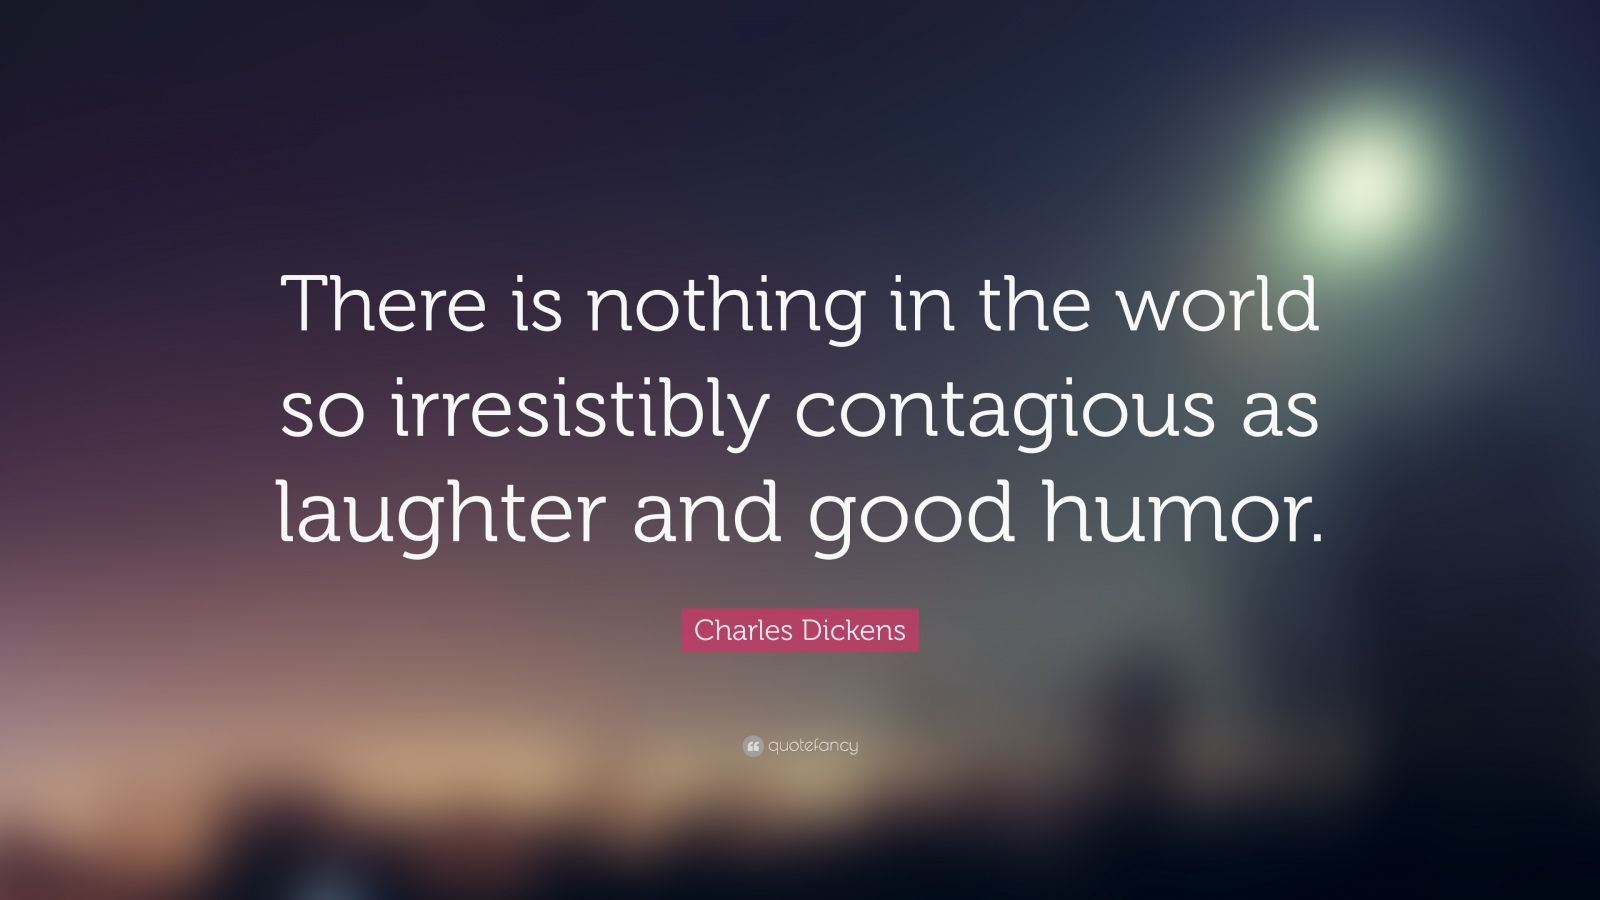 nothing there laughter contagious dickens charles humor quote irresistibly wallpapers quotefancy